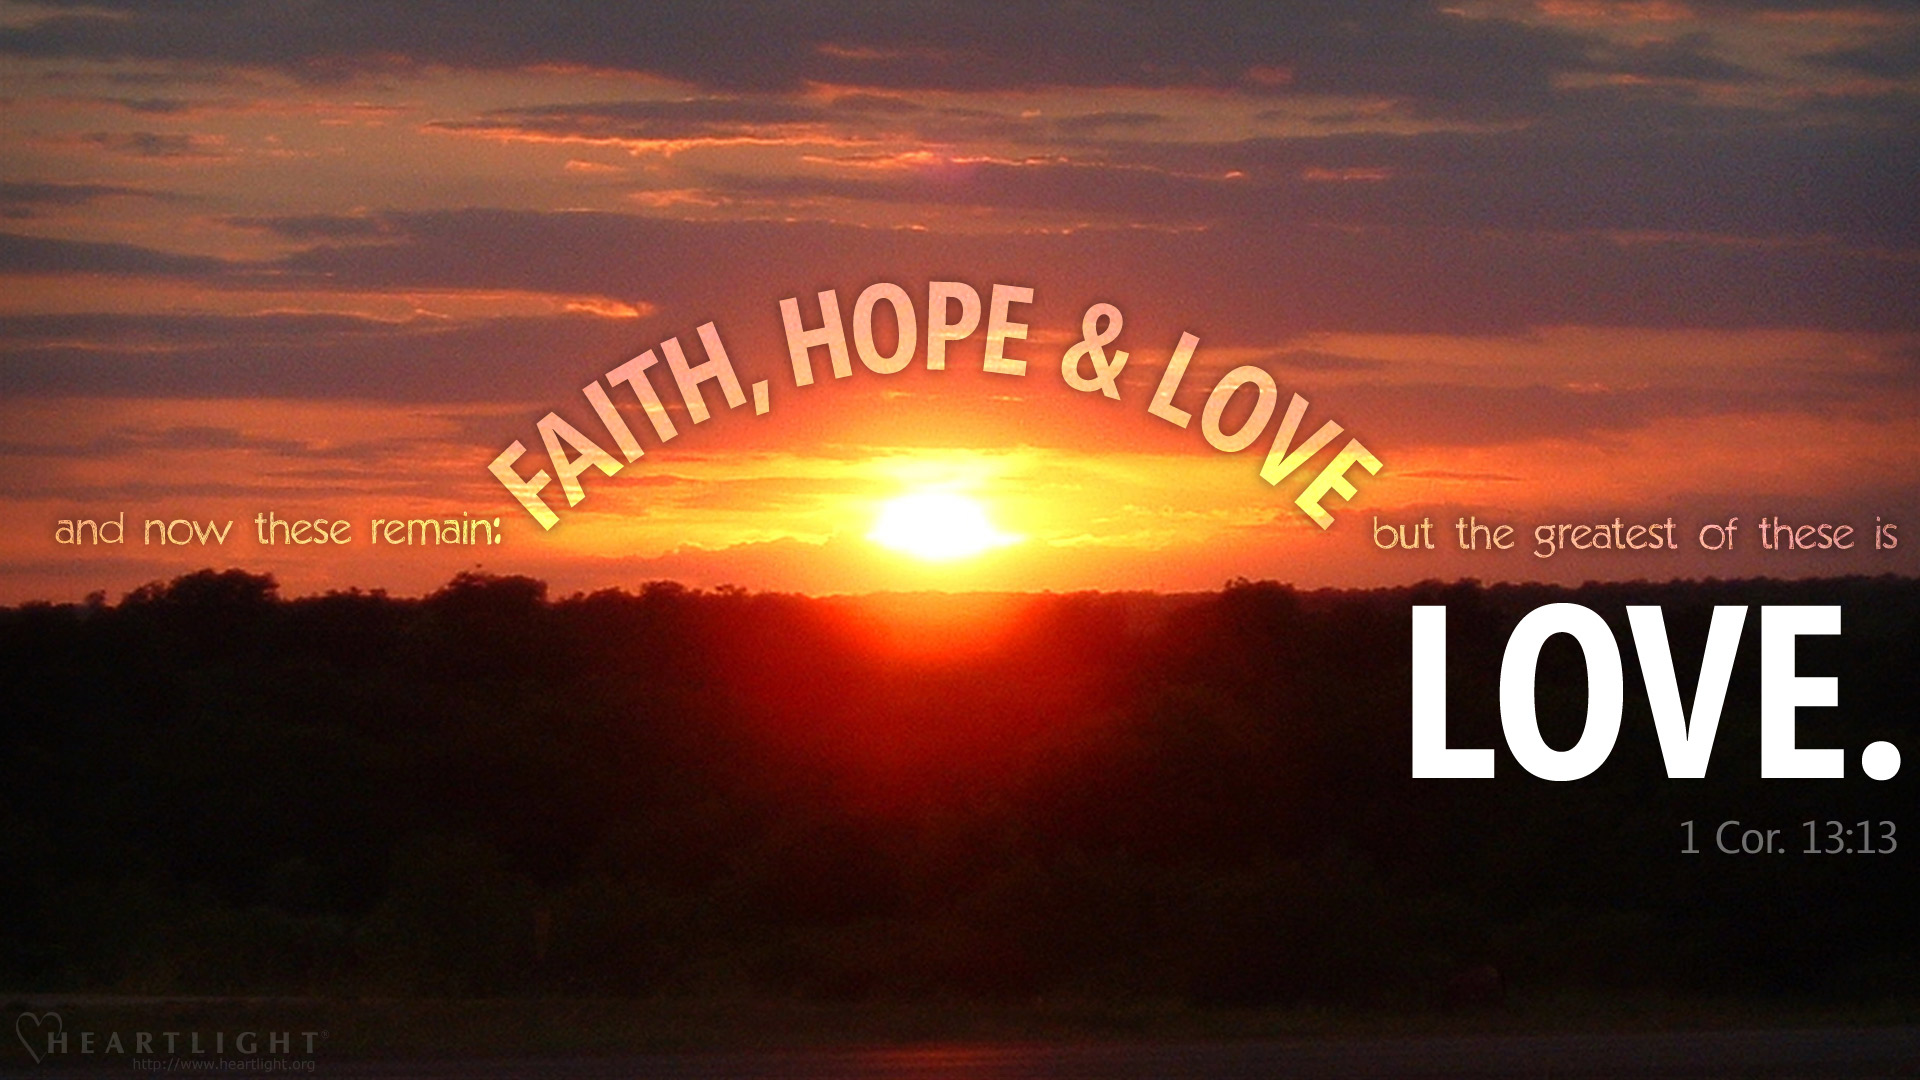 """Cross Country Quotes >> """"This is the Greatest"""" — PowerPoint Background of 1 Corinthians 13:13 Sunrise Sunset — Heartlight®"""